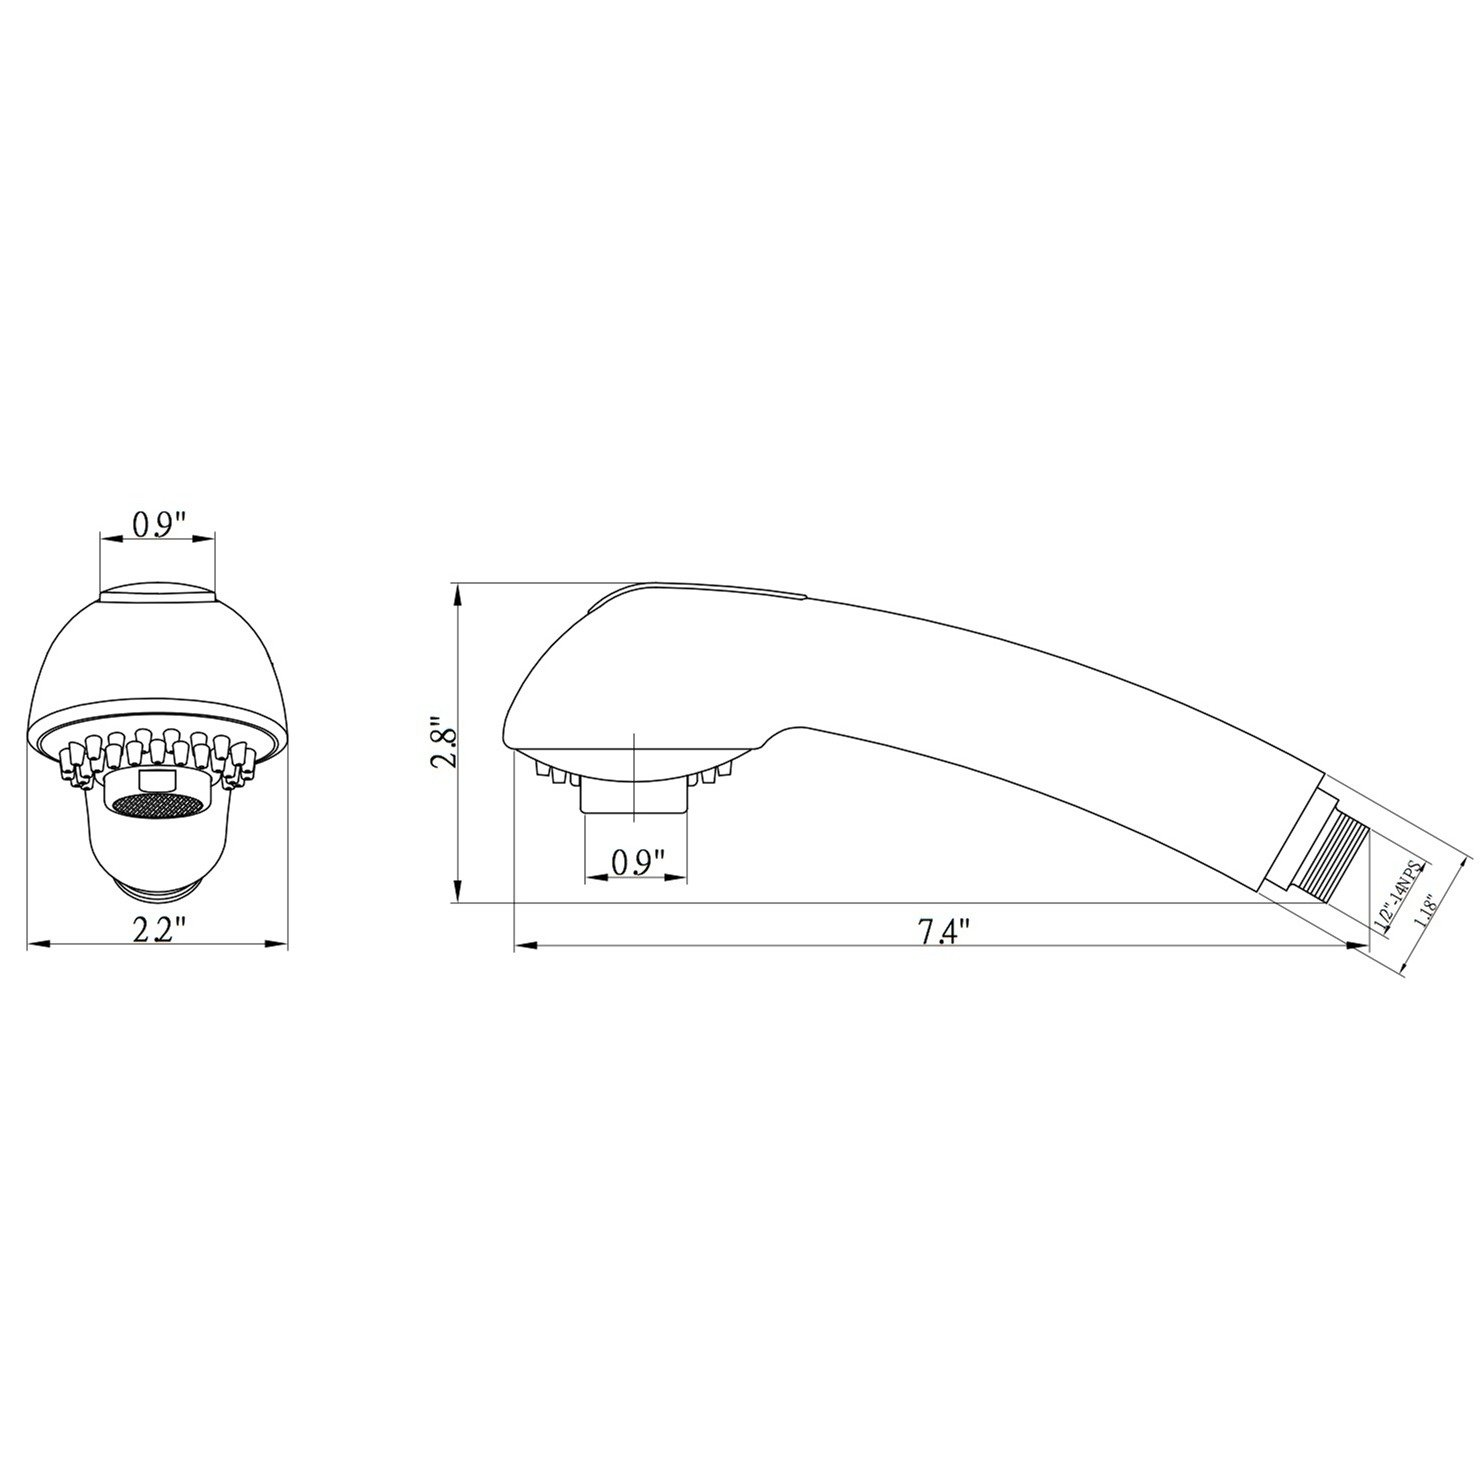 Dura Faucet Df Rk850 Wt Designer Pull Out Sprayer Jeep Kes Diagram Replacement White Automotive